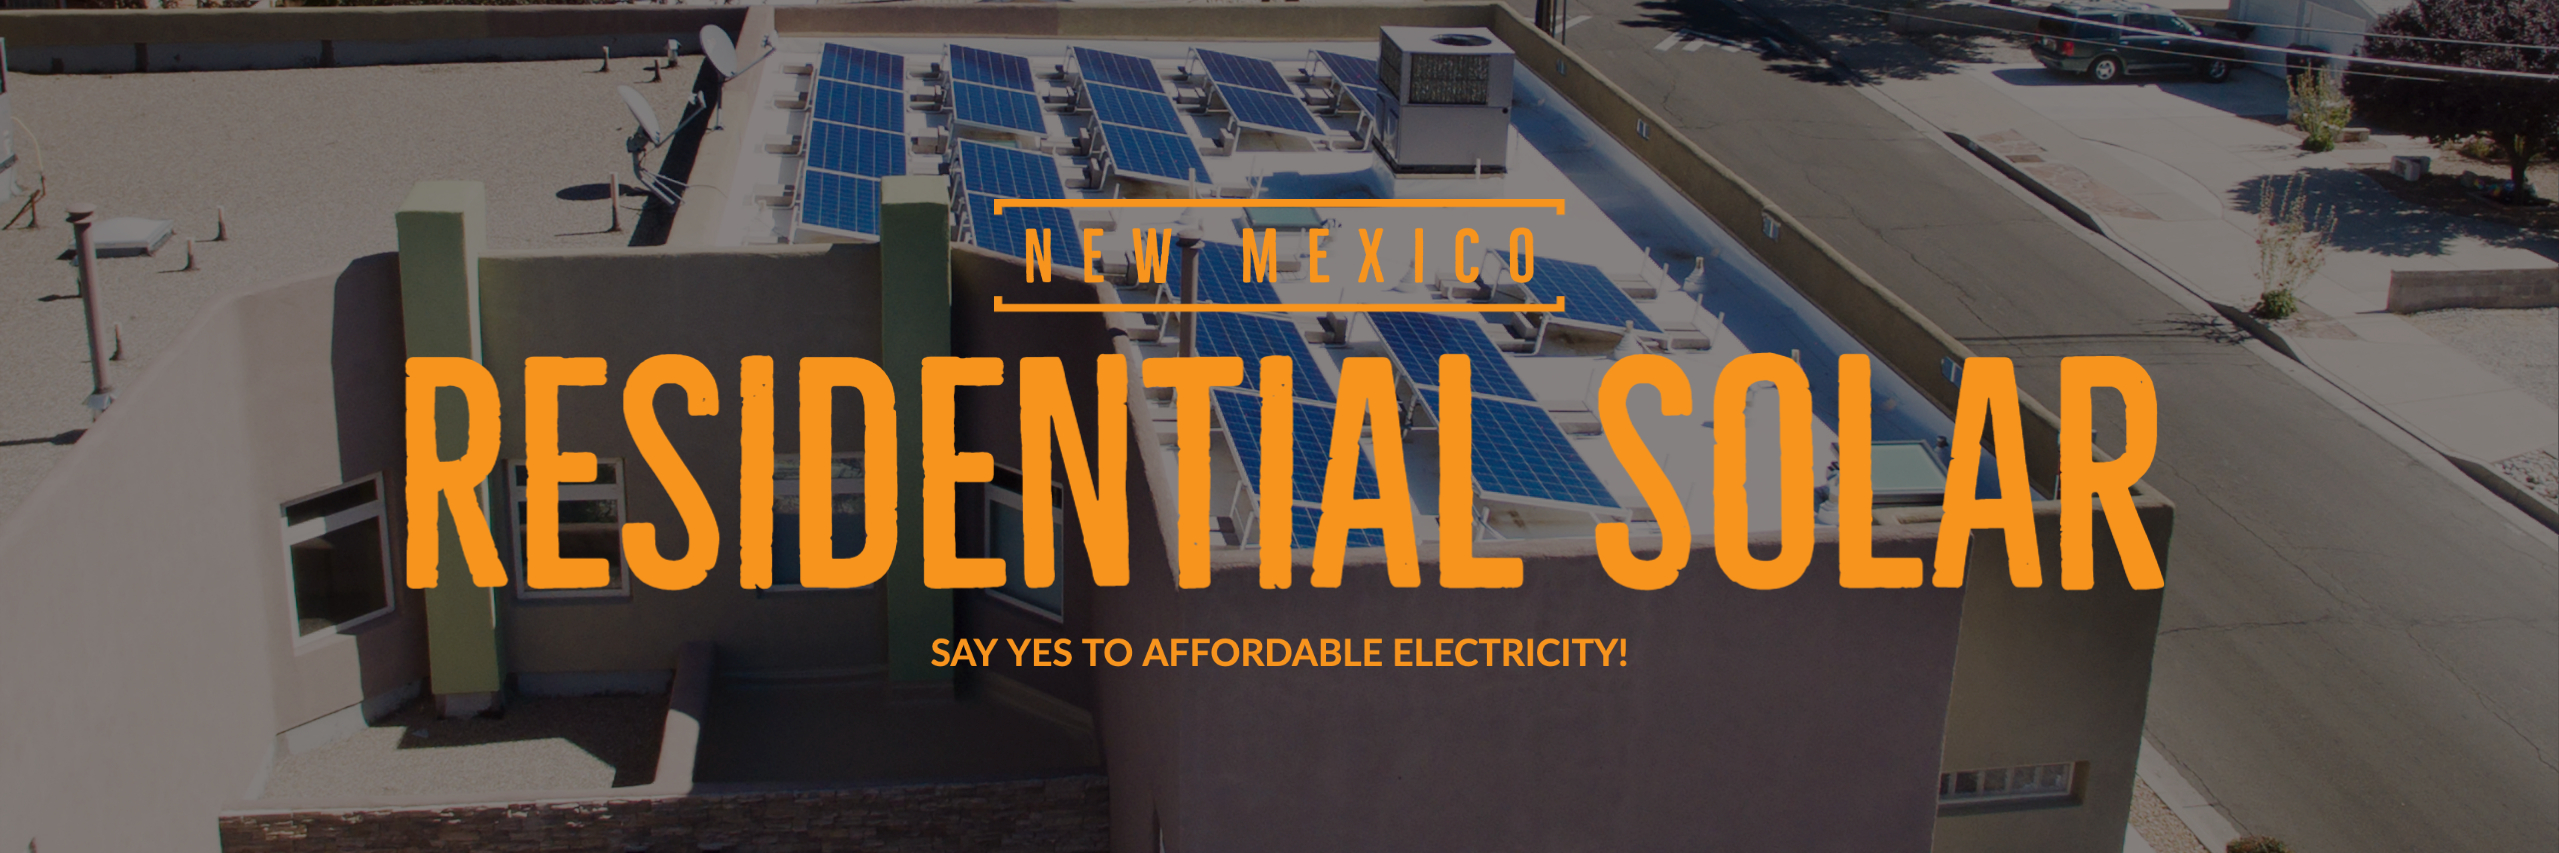 Affordable Electricity for Homeowners